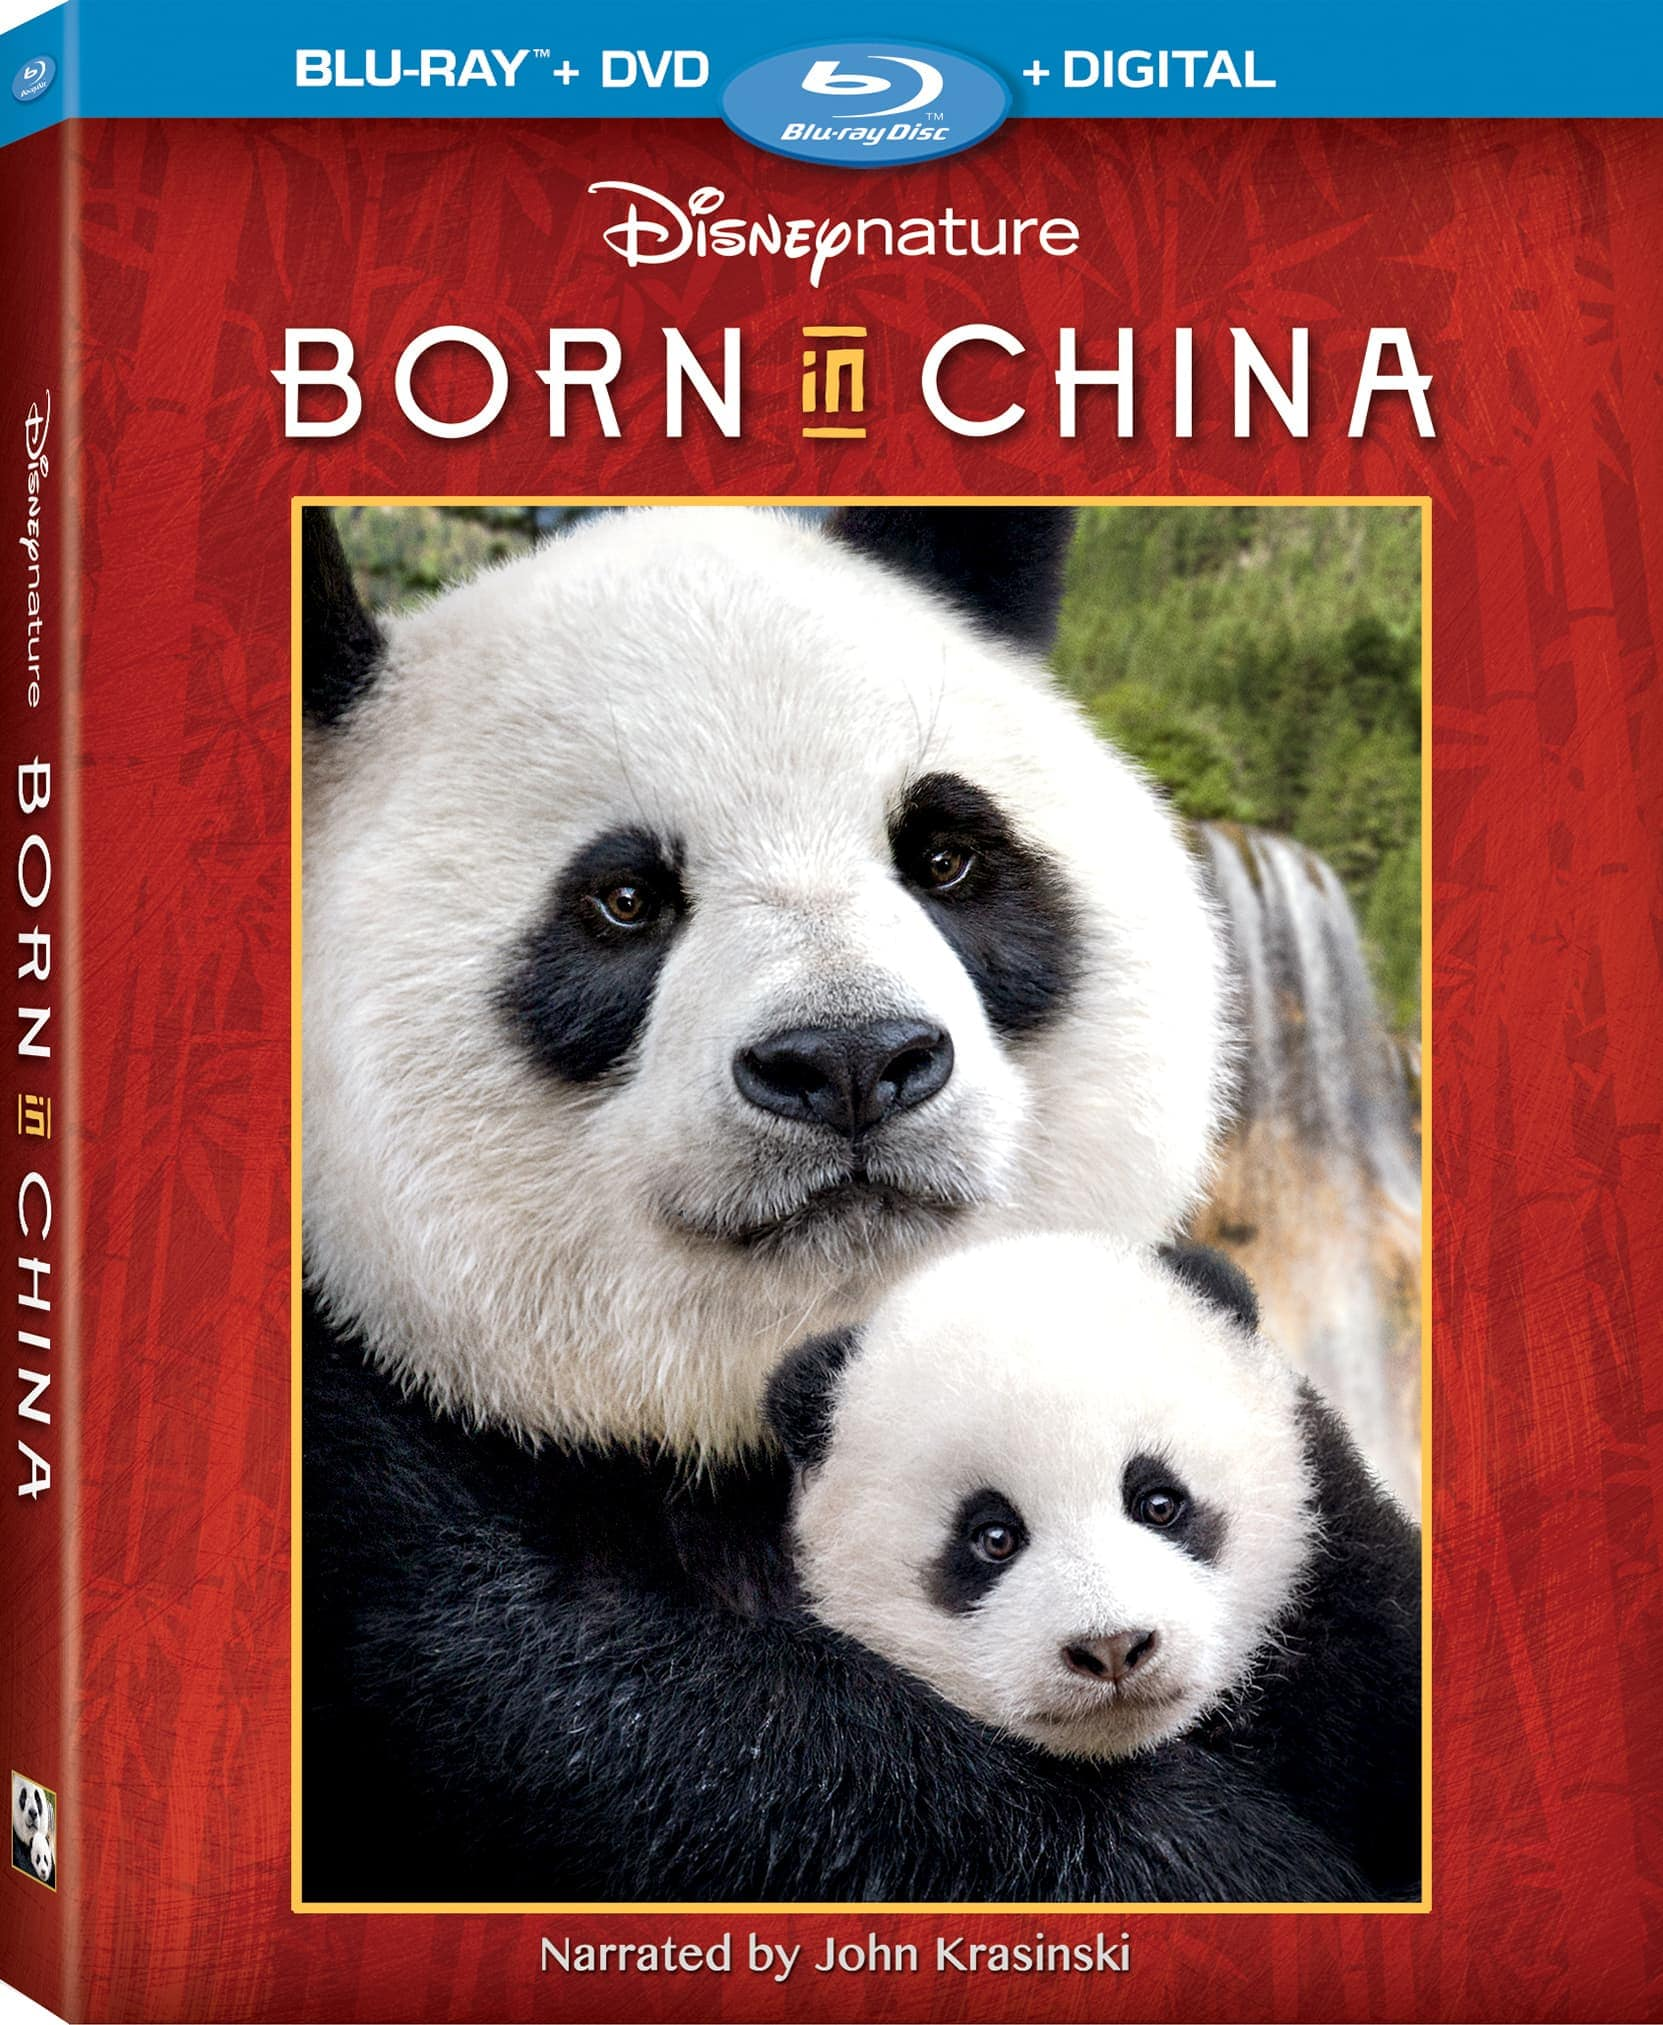 """Disney's Born In China, narrated by John Krasinski, transports audiences to some of the world's most extreme environments of China where few people have ever ventured to witness wildly intimate and adorable moments in the lives of three animal families - a doting panda bear mother, a 2-year-old golden snub-nosed monkey, and a mother snow leopard. It is the seventh theatrical release from Disneynature, which brings the world's top nature filmmakers together to share wildlife stories that engage, inspire and educate. The breathtaking footage and high-definition quality picture is captivating for audiences of all ages and is a must-add to the in-home collection. Disneynature's newest true-life adventure film """"Born in China"""" journeys into homes on Digital and Blu-ray™ Combo Pack TODAY, Aug. 29."""